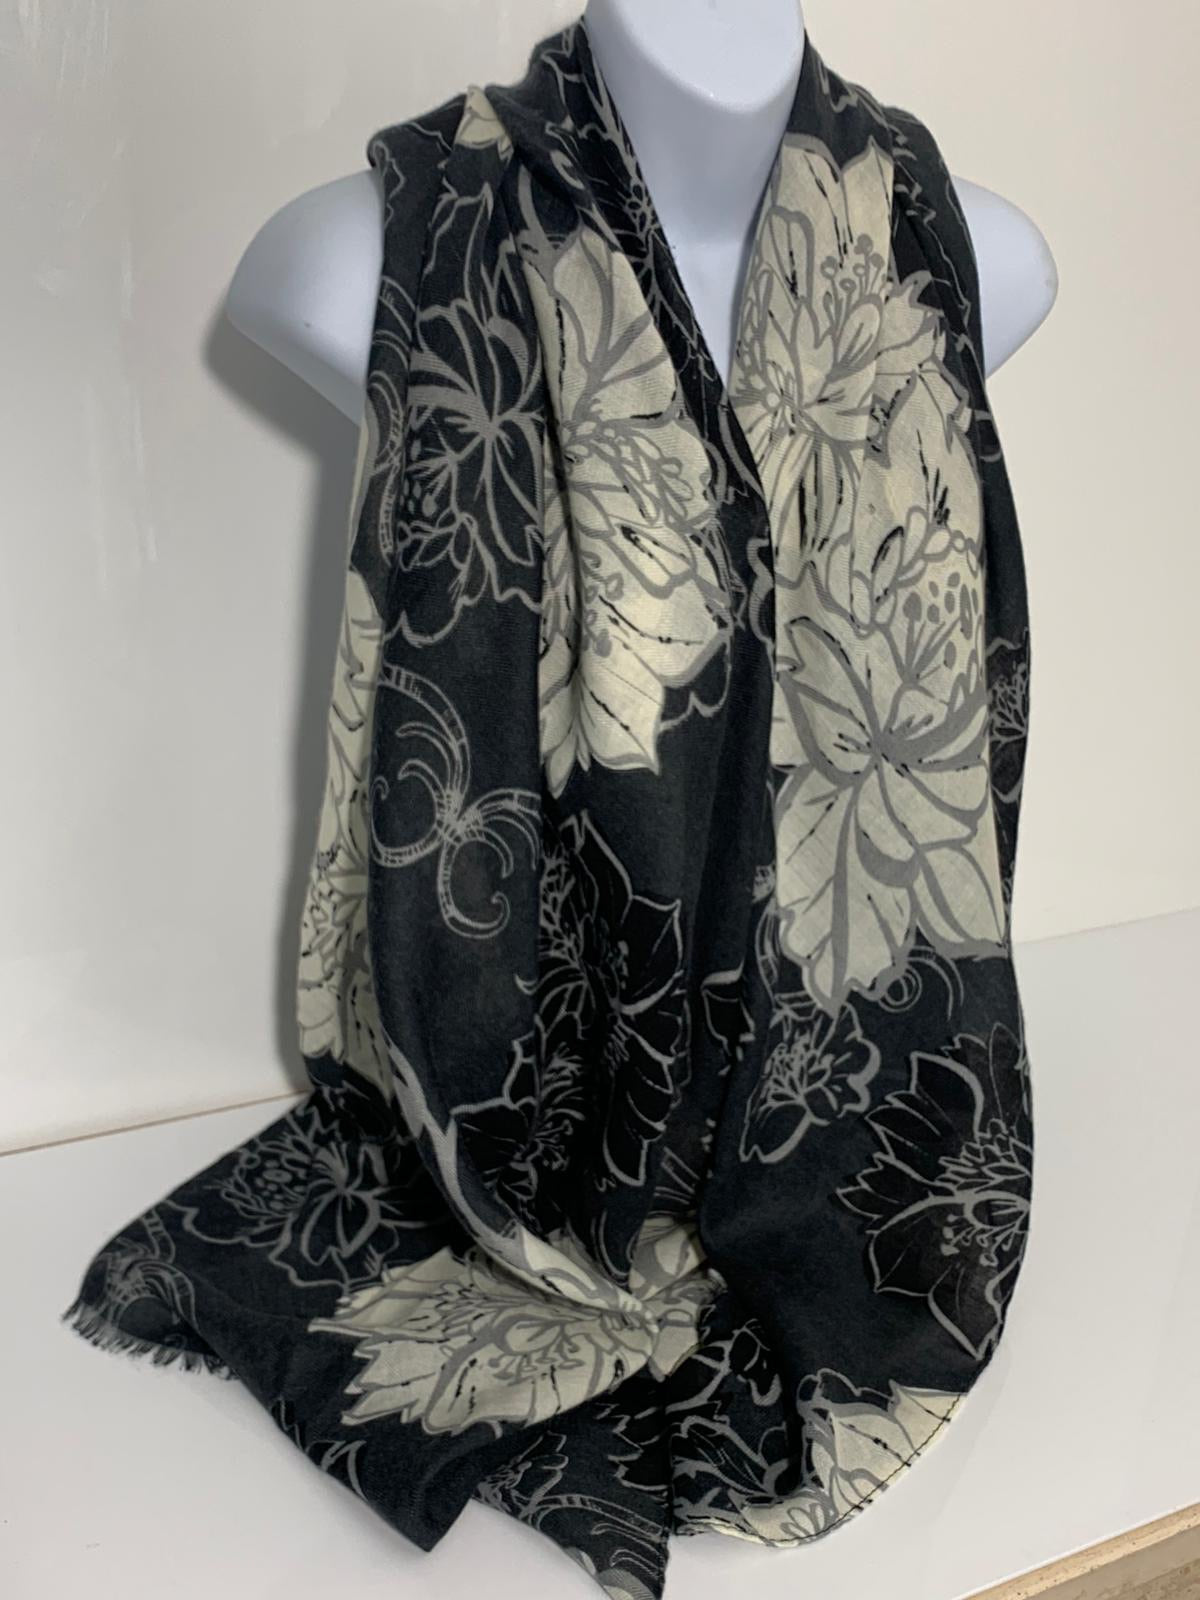 Cream, black and grey floral print scarf